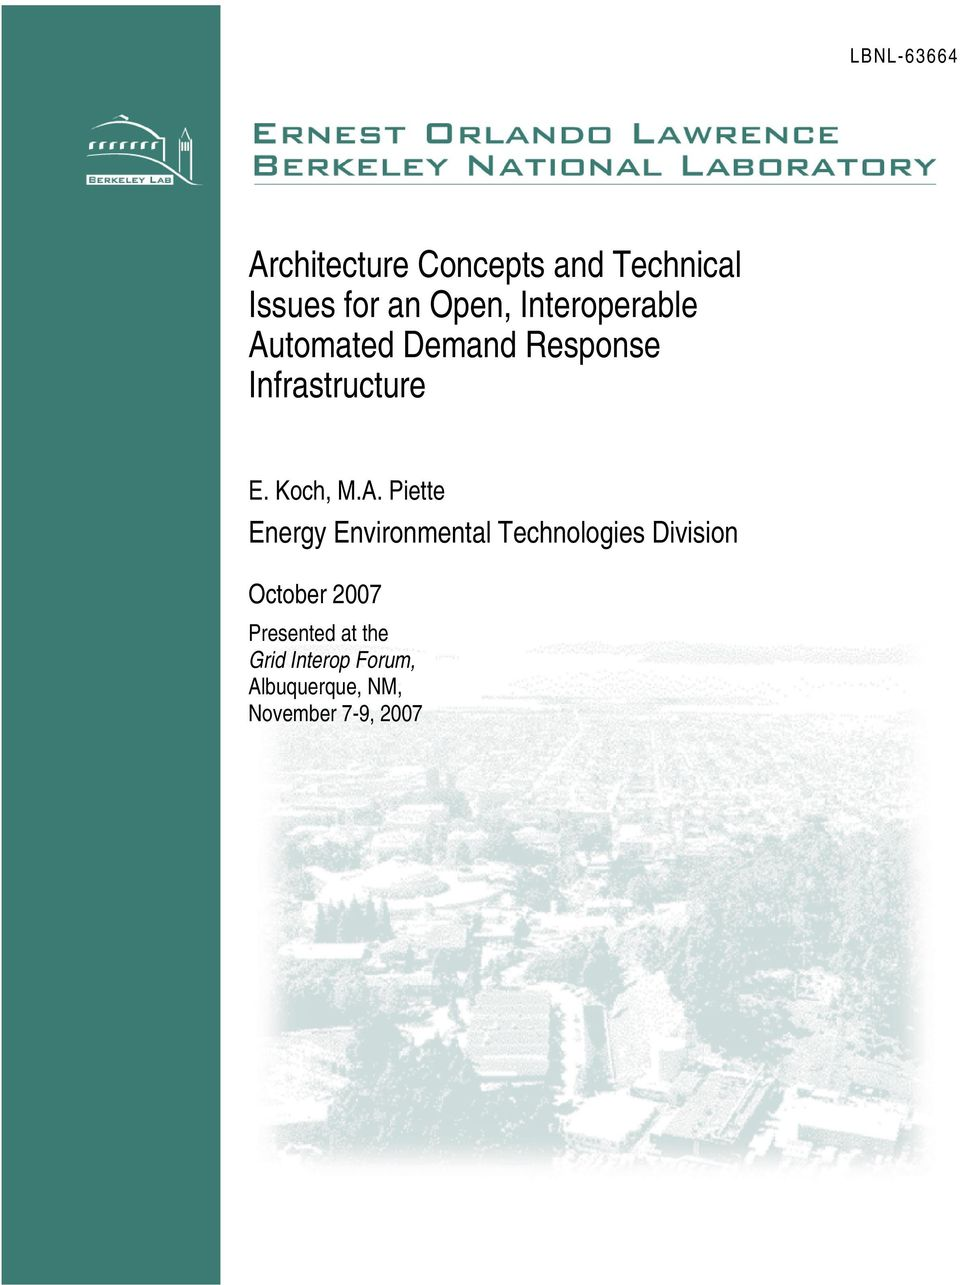 tomated Demand Response Infrastructure E. Koch, M.A.